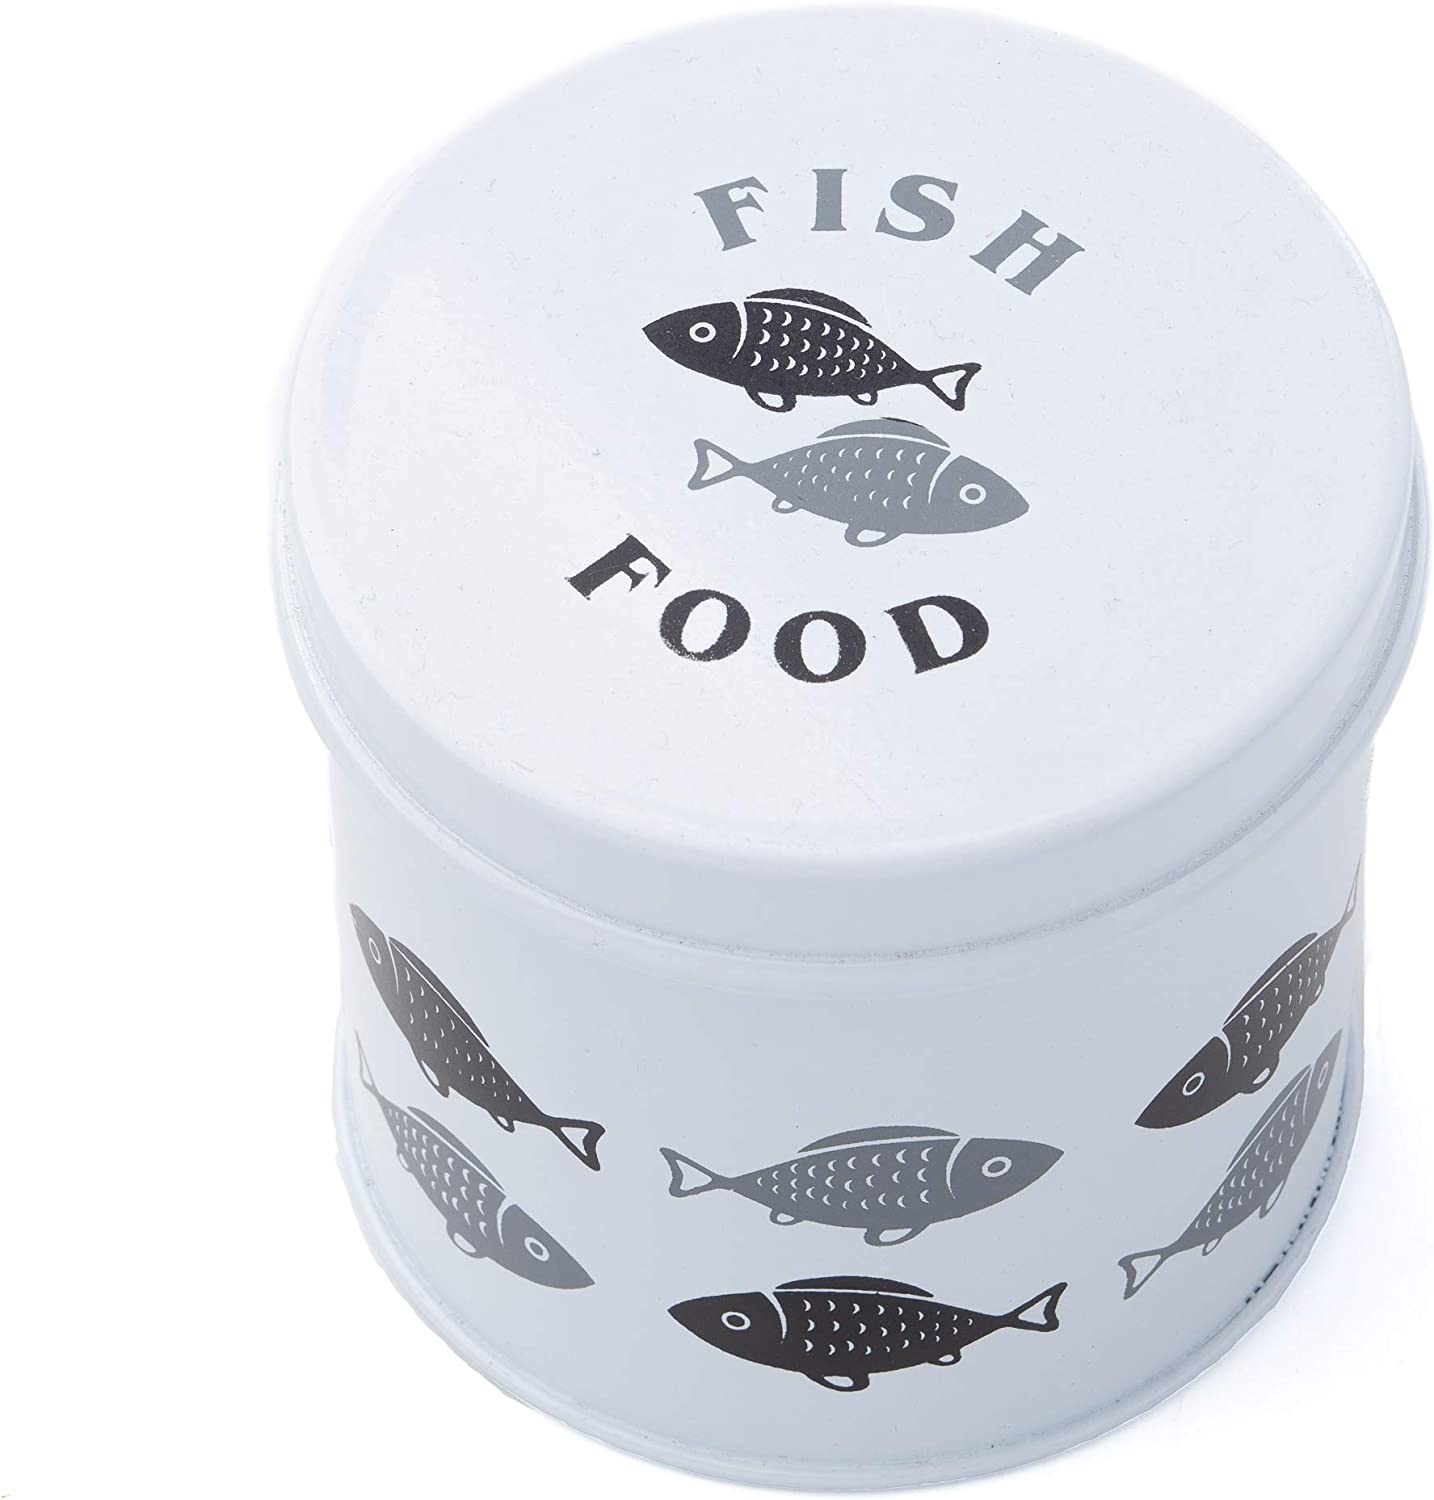 Simple Design White Round Fish Tin for Fish Food Storage | Easy to Store on or Near Your Fish Aquarium or Fish Tank | Lightweight & Tight Seal for Your Fish Food